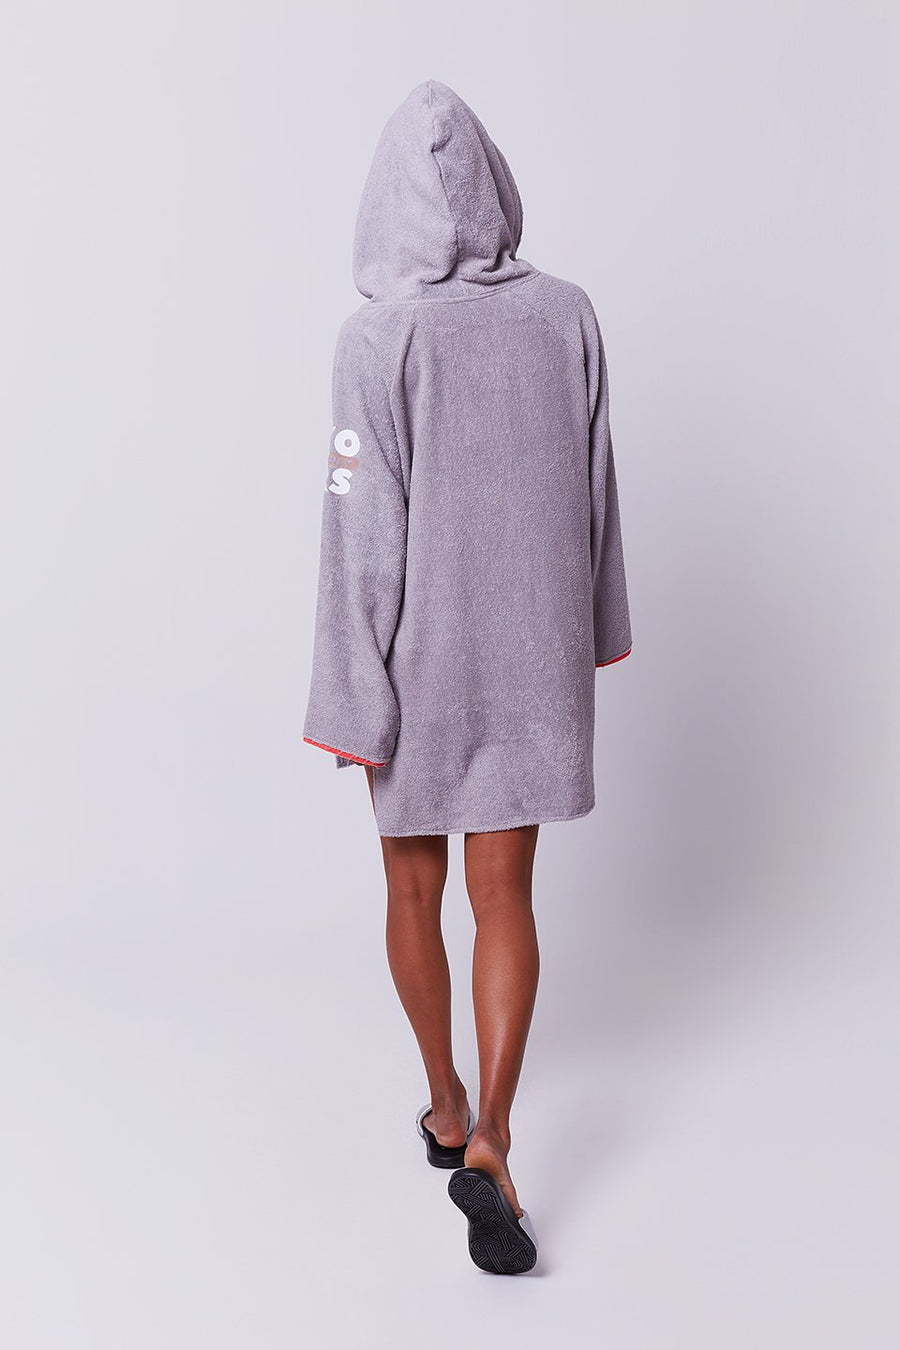 APRÊS-SURF HAVLU SWEATSHIRT - COOL GREY